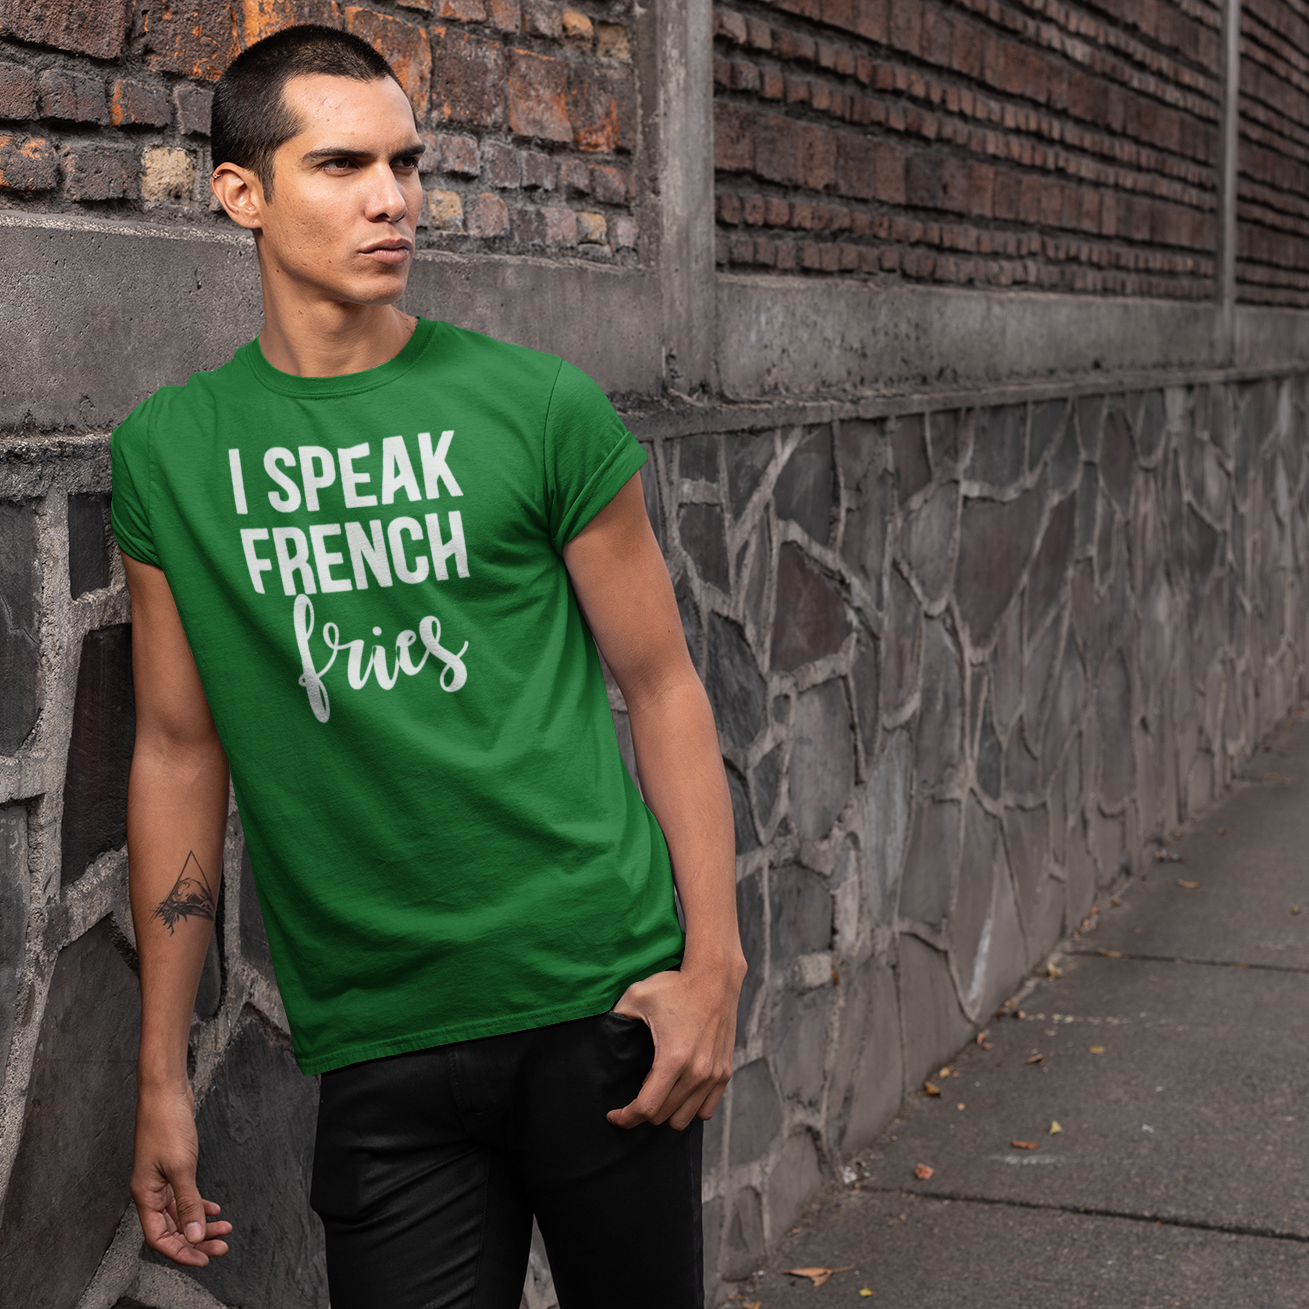 'I speak french fries' adult shirt